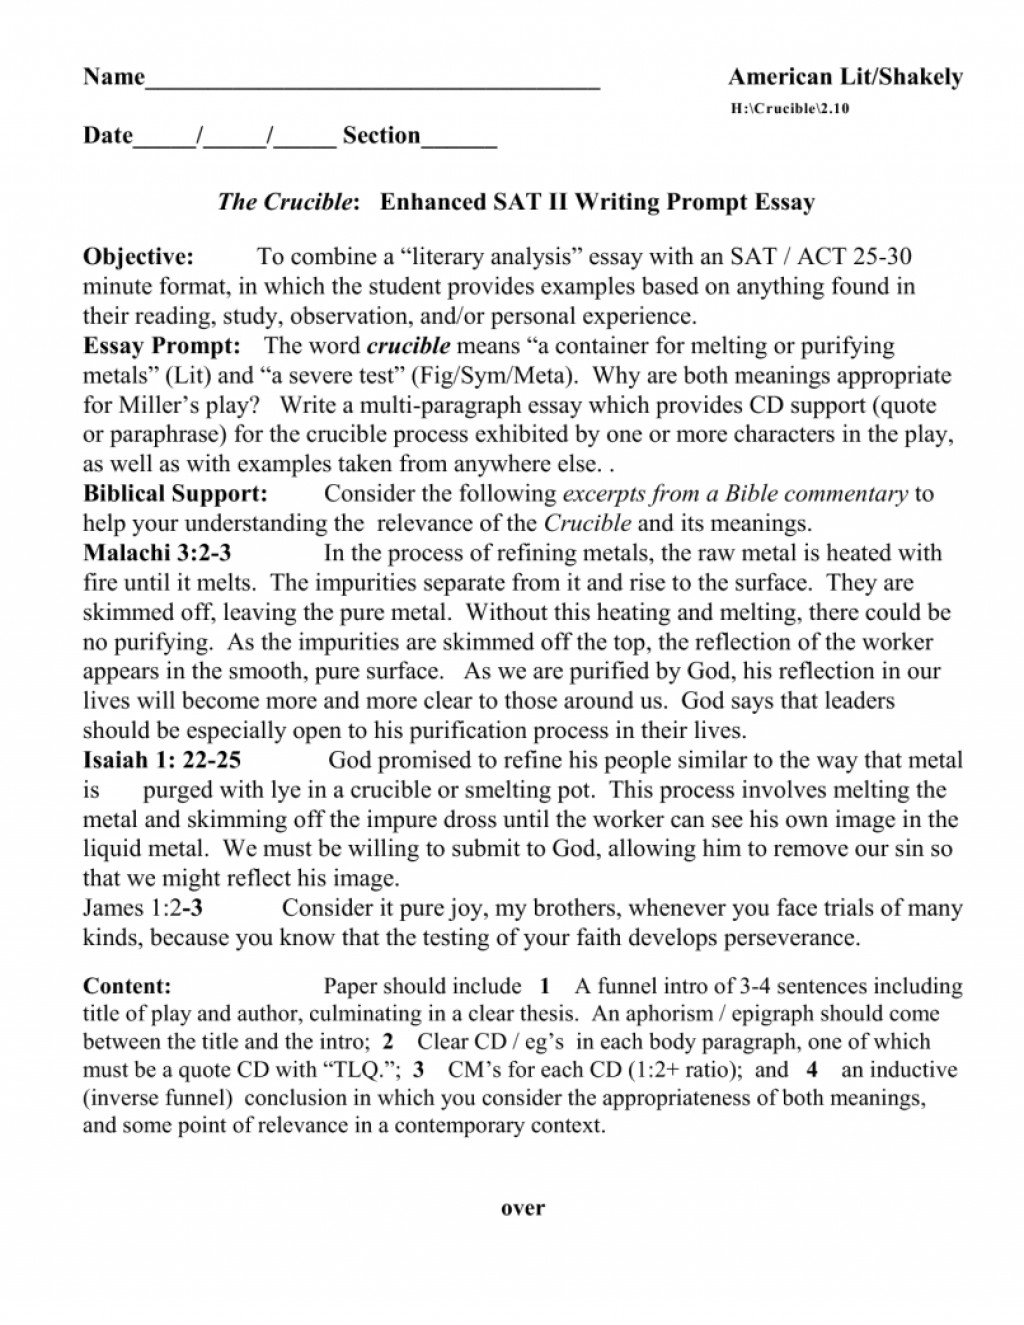 005 Sample Sat Essays Essay Example Ssat Examples Poemdoc Or Writing Prompts How To Get Perfect L Prompt Surprising Pdf 2017 Large